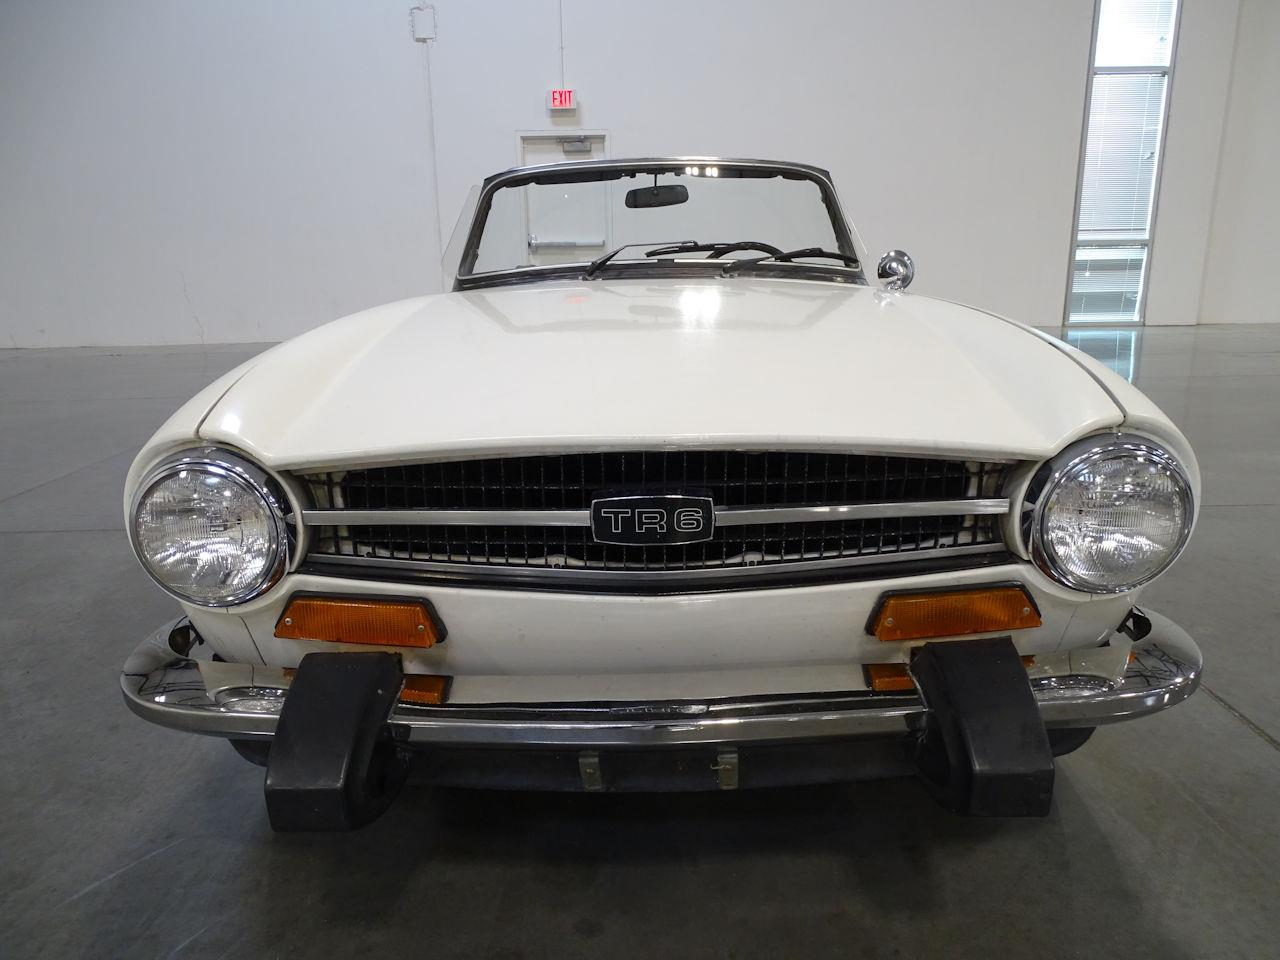 Large Picture of 1974 TR6 located in Deer Valley Arizona - MCYM